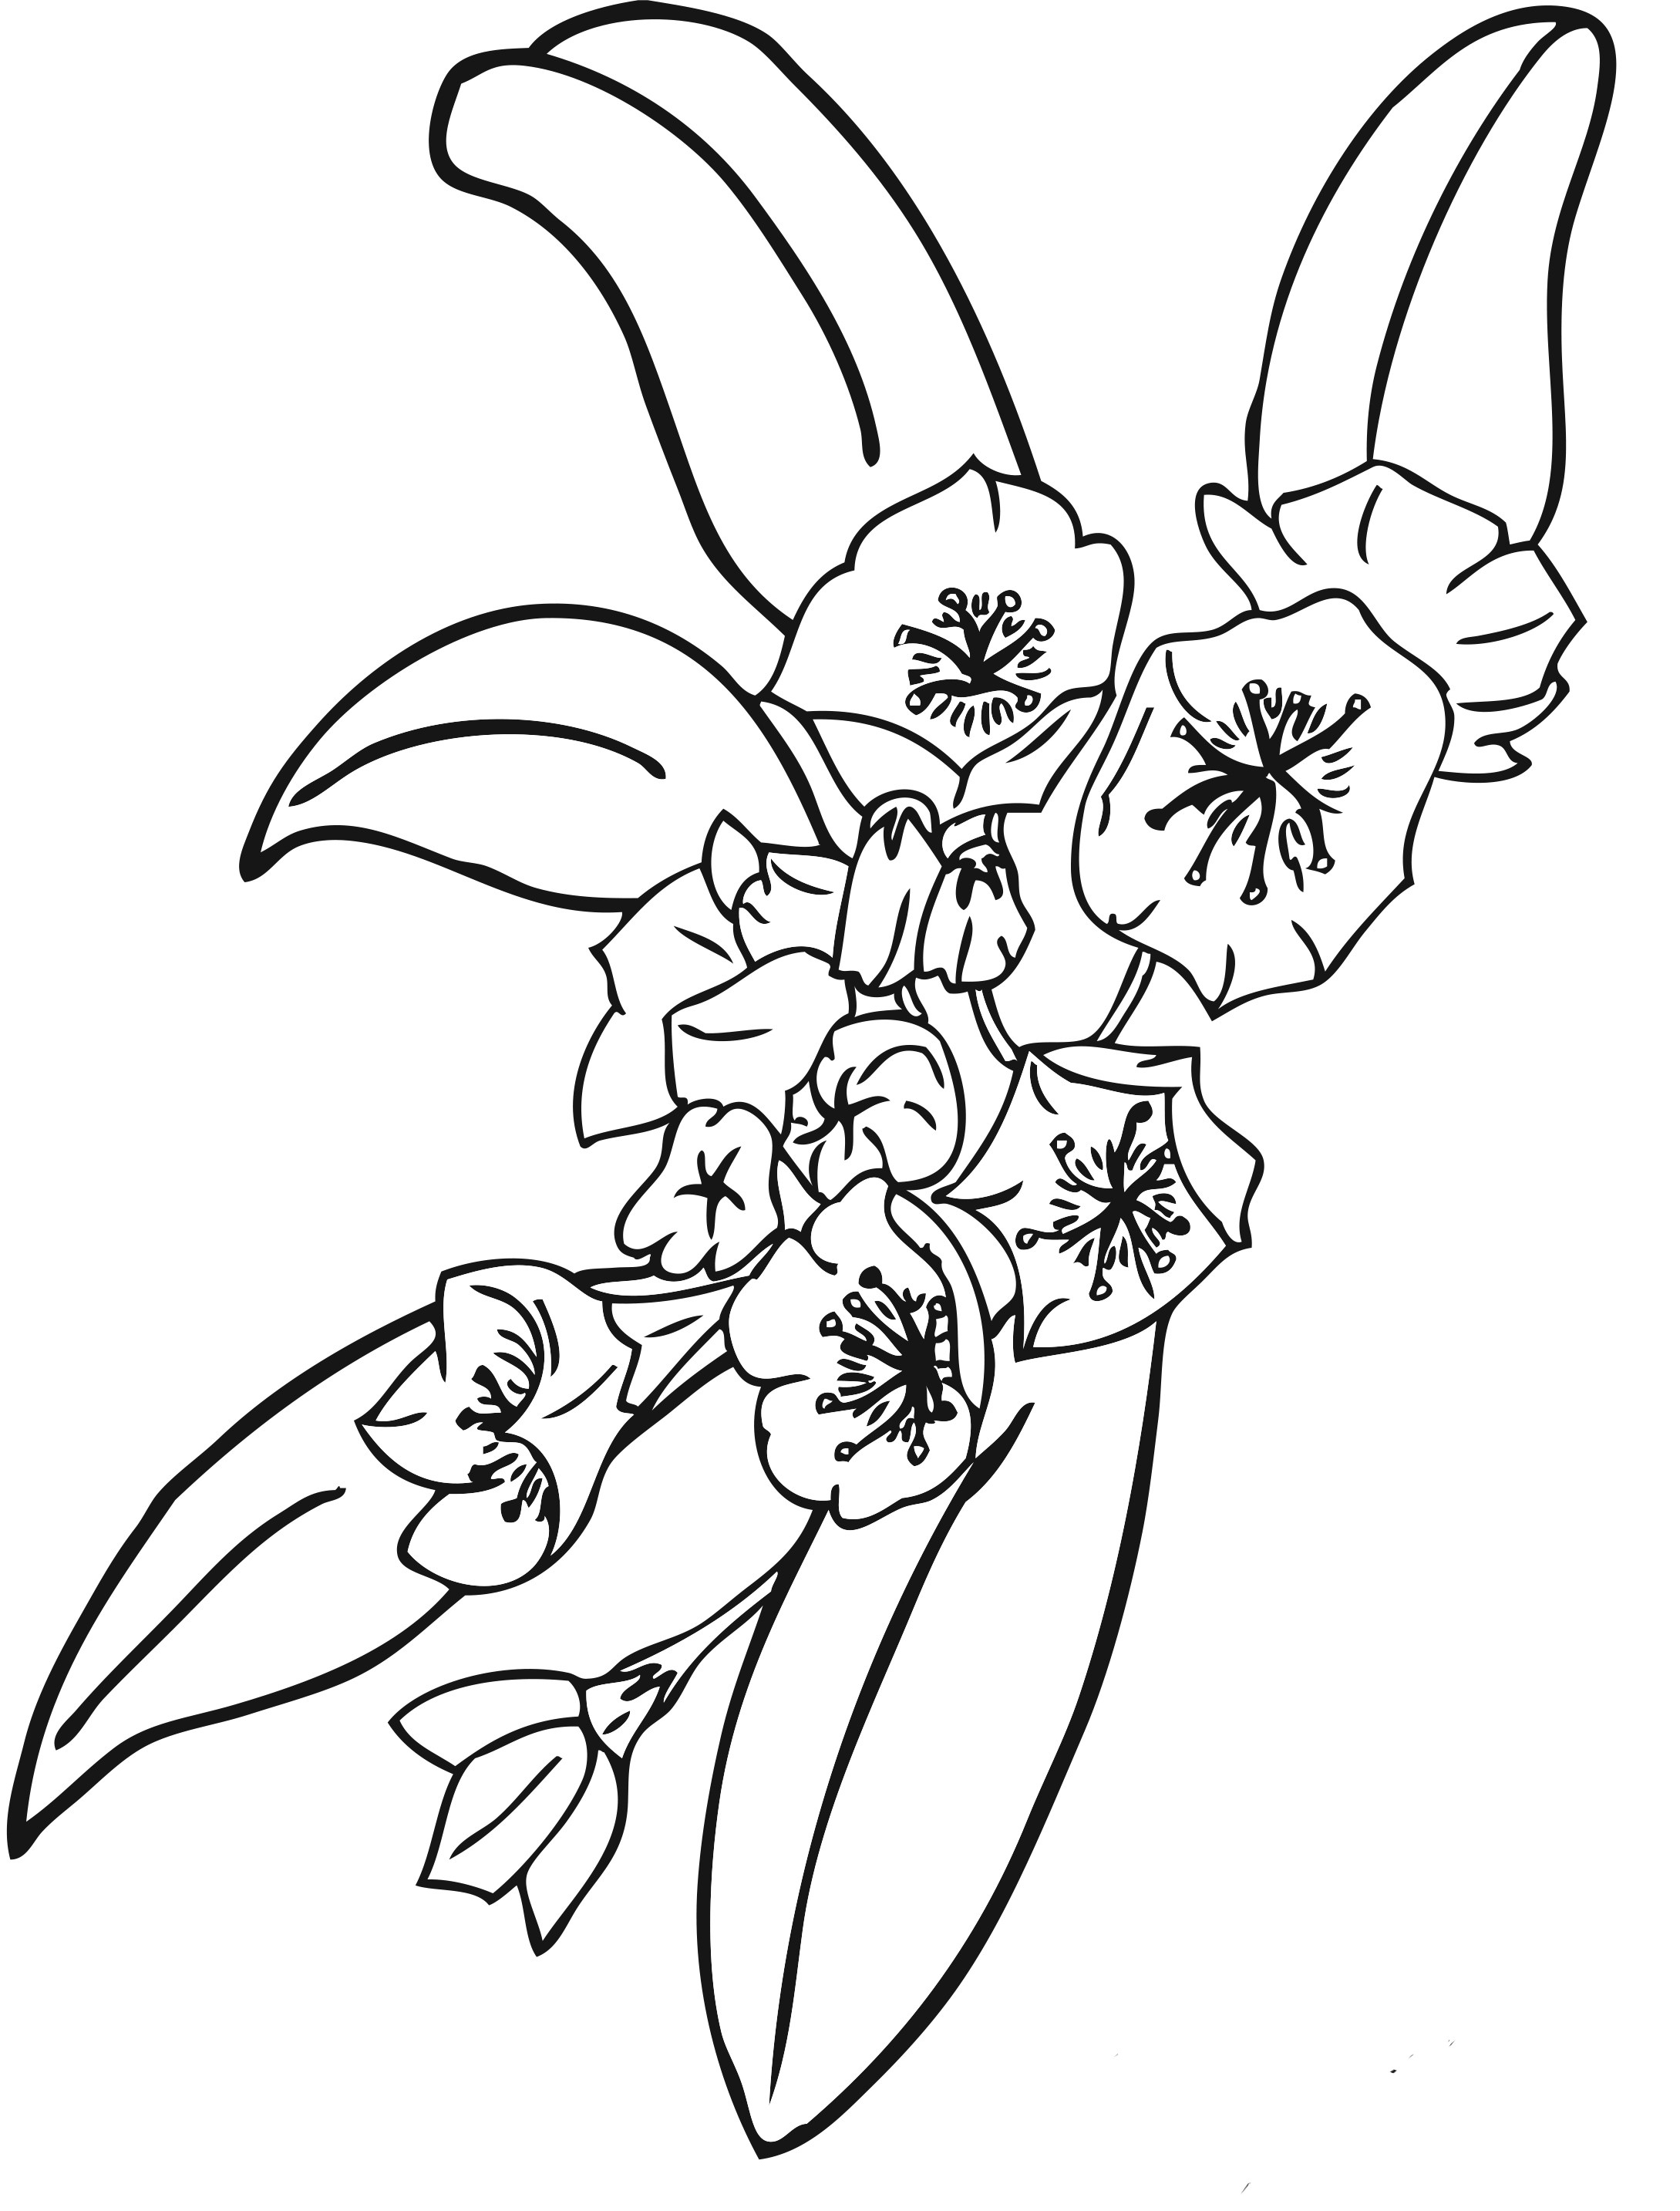 Free Printable Flower Coloring Pages Free Printable Flower Coloring Pages For Kids